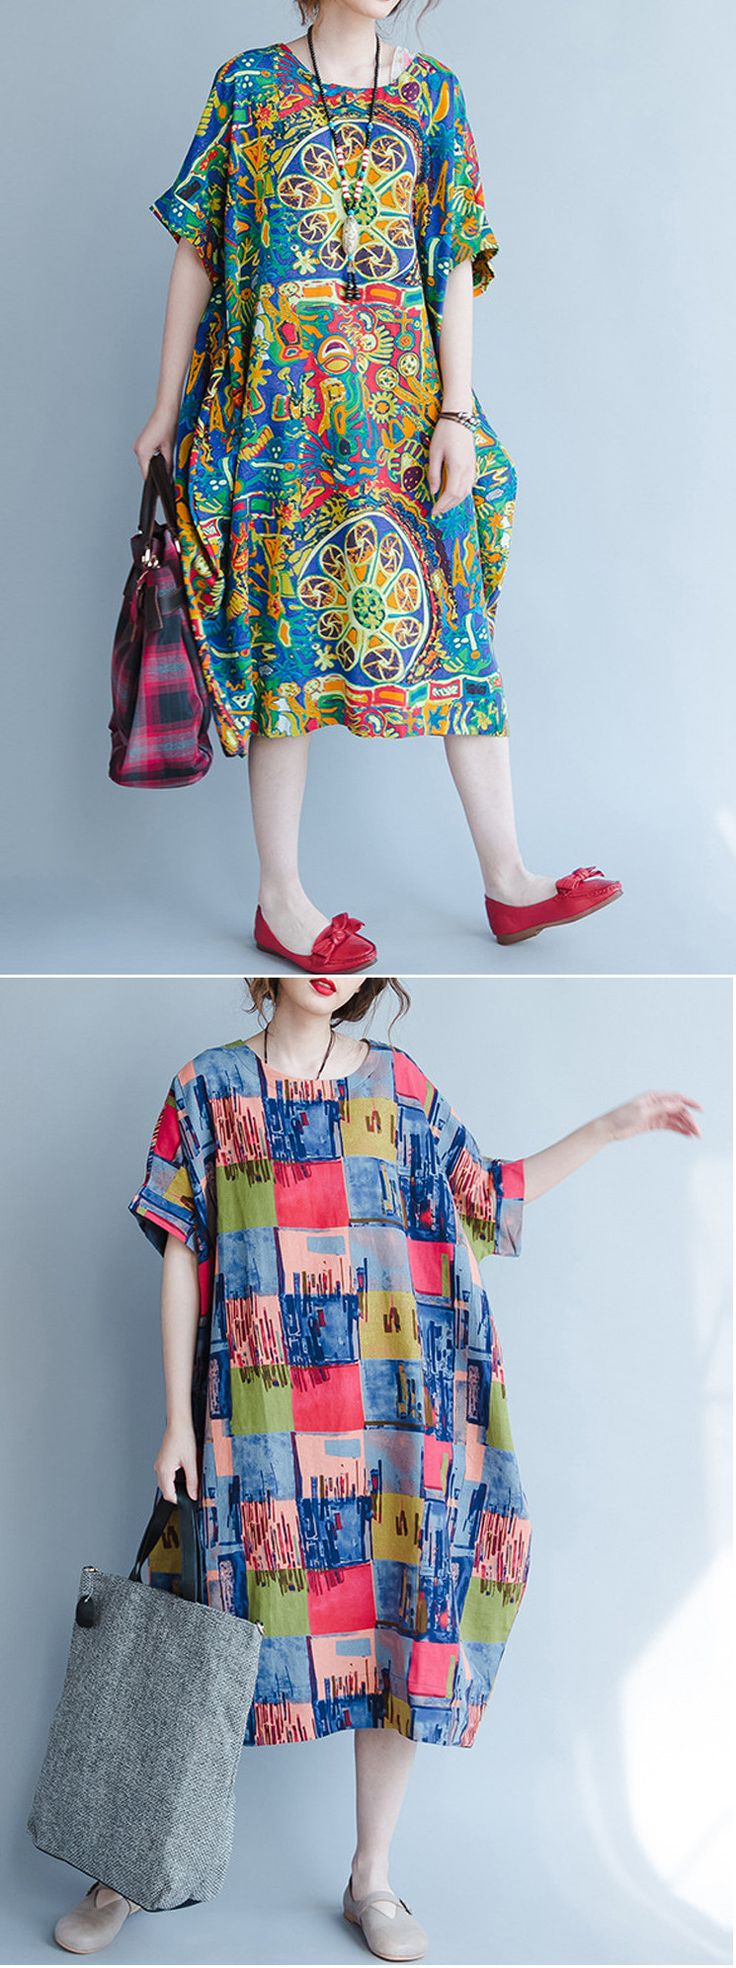 US$27.00 O-NEWE Casual Loose Short Sleeves Printed Dresses For Women